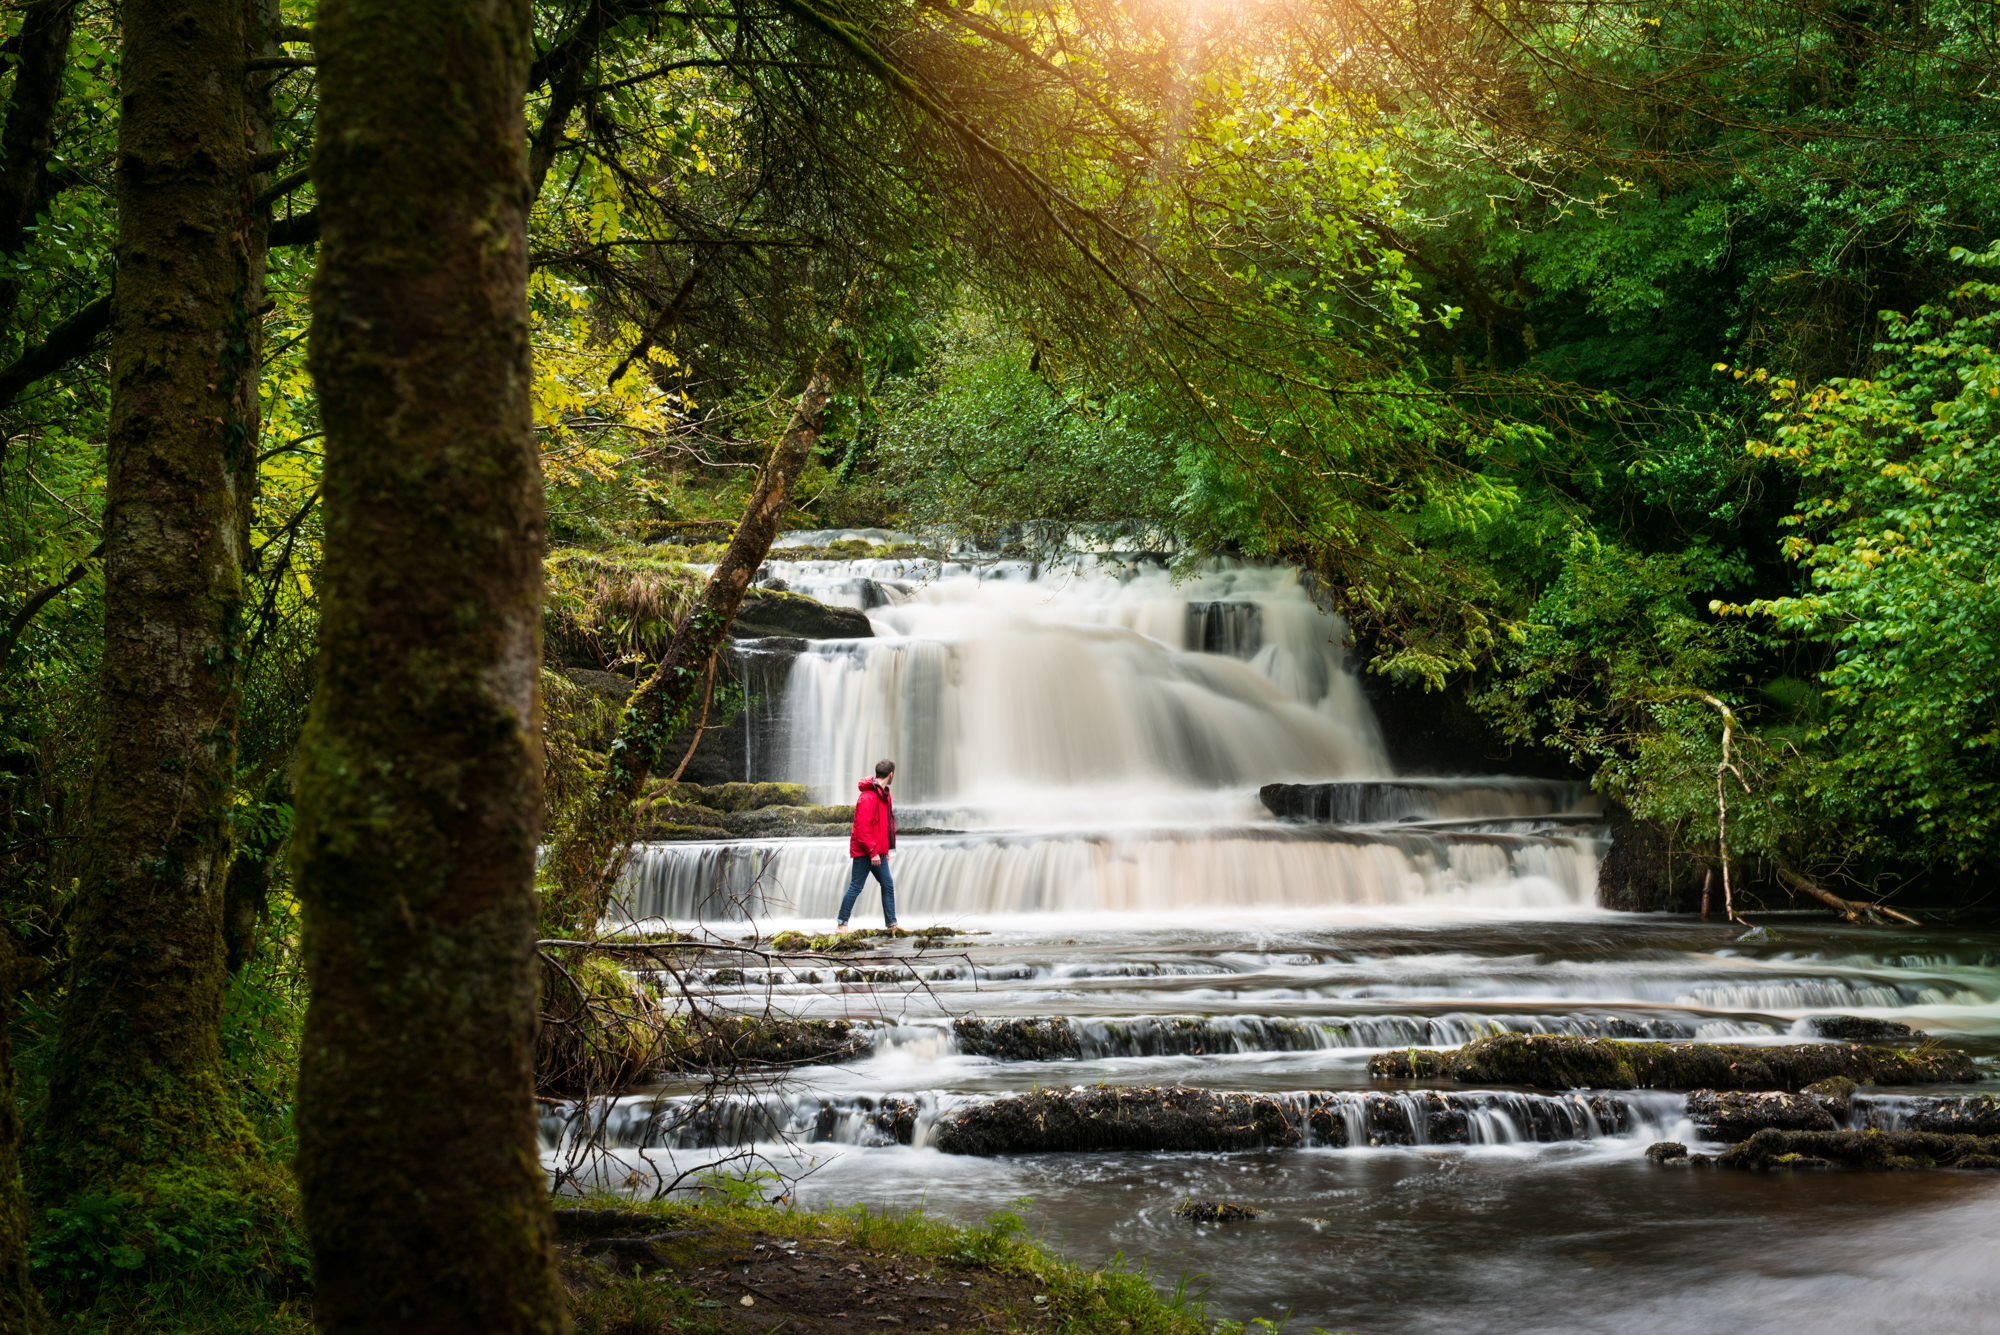 A man looking up at the impressive Fowley Falls